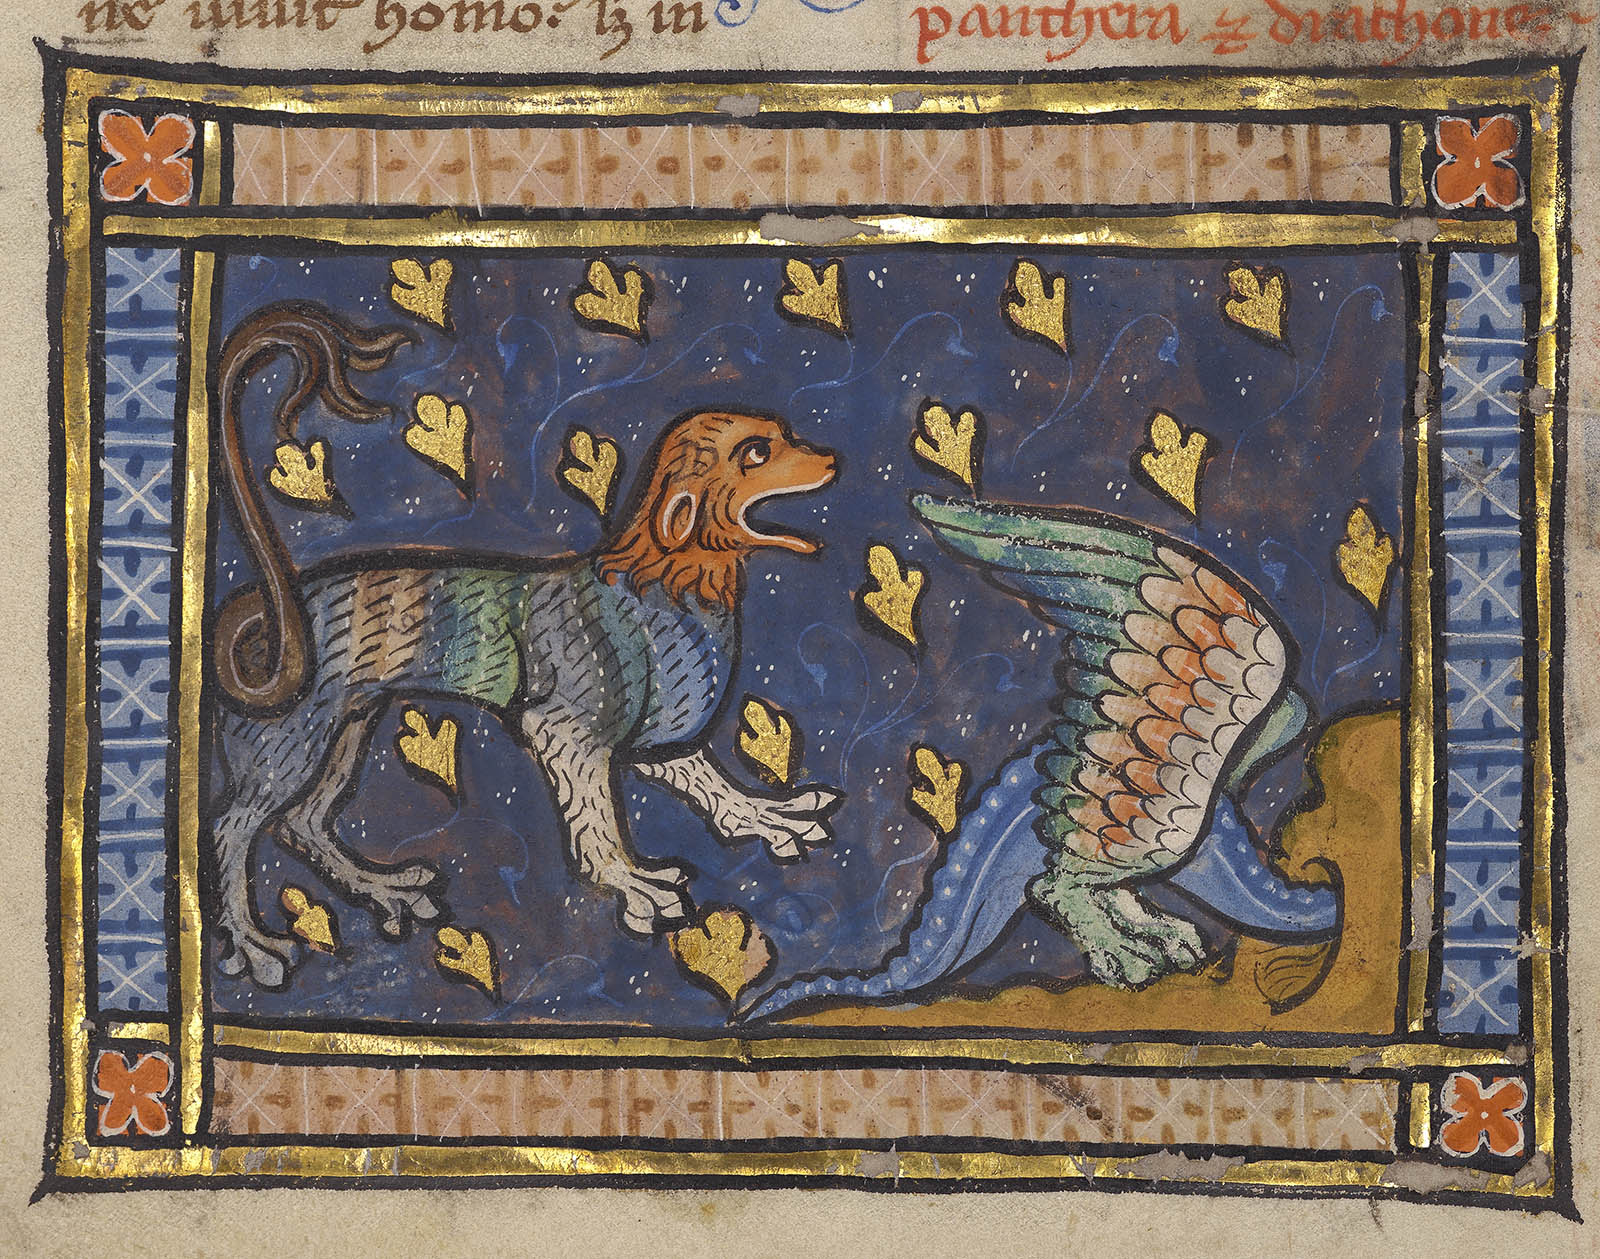 A rainbow-colored panther has its mouth open, releasing its sweet breath. Tail curled in the air, it chases a multicolored dragon into the dragon's cave.